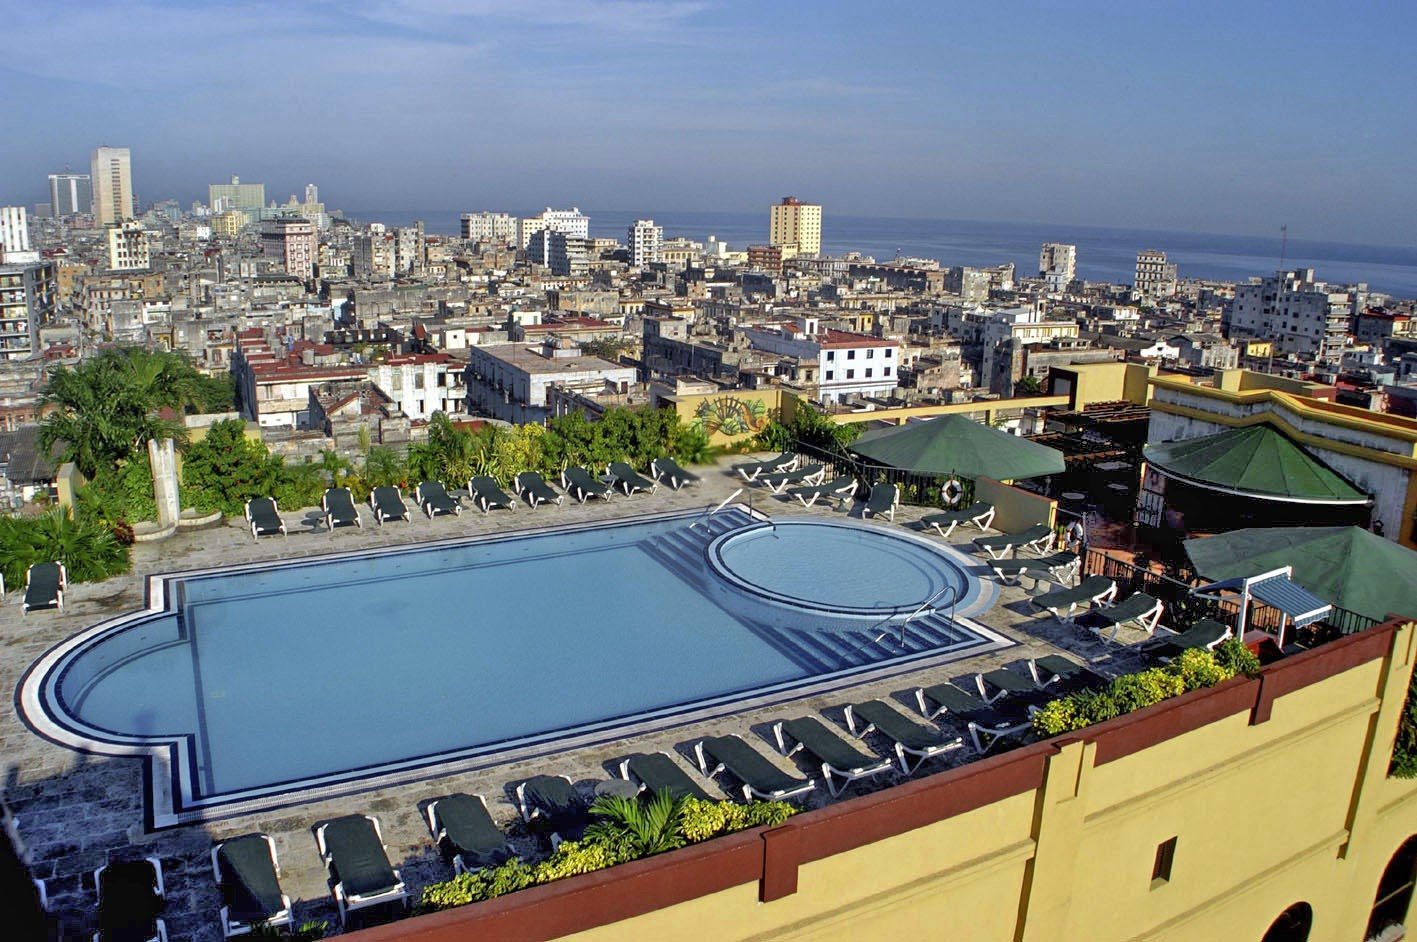 Aerial view of the pool at the Parque Central hotel in Havana, Cuba